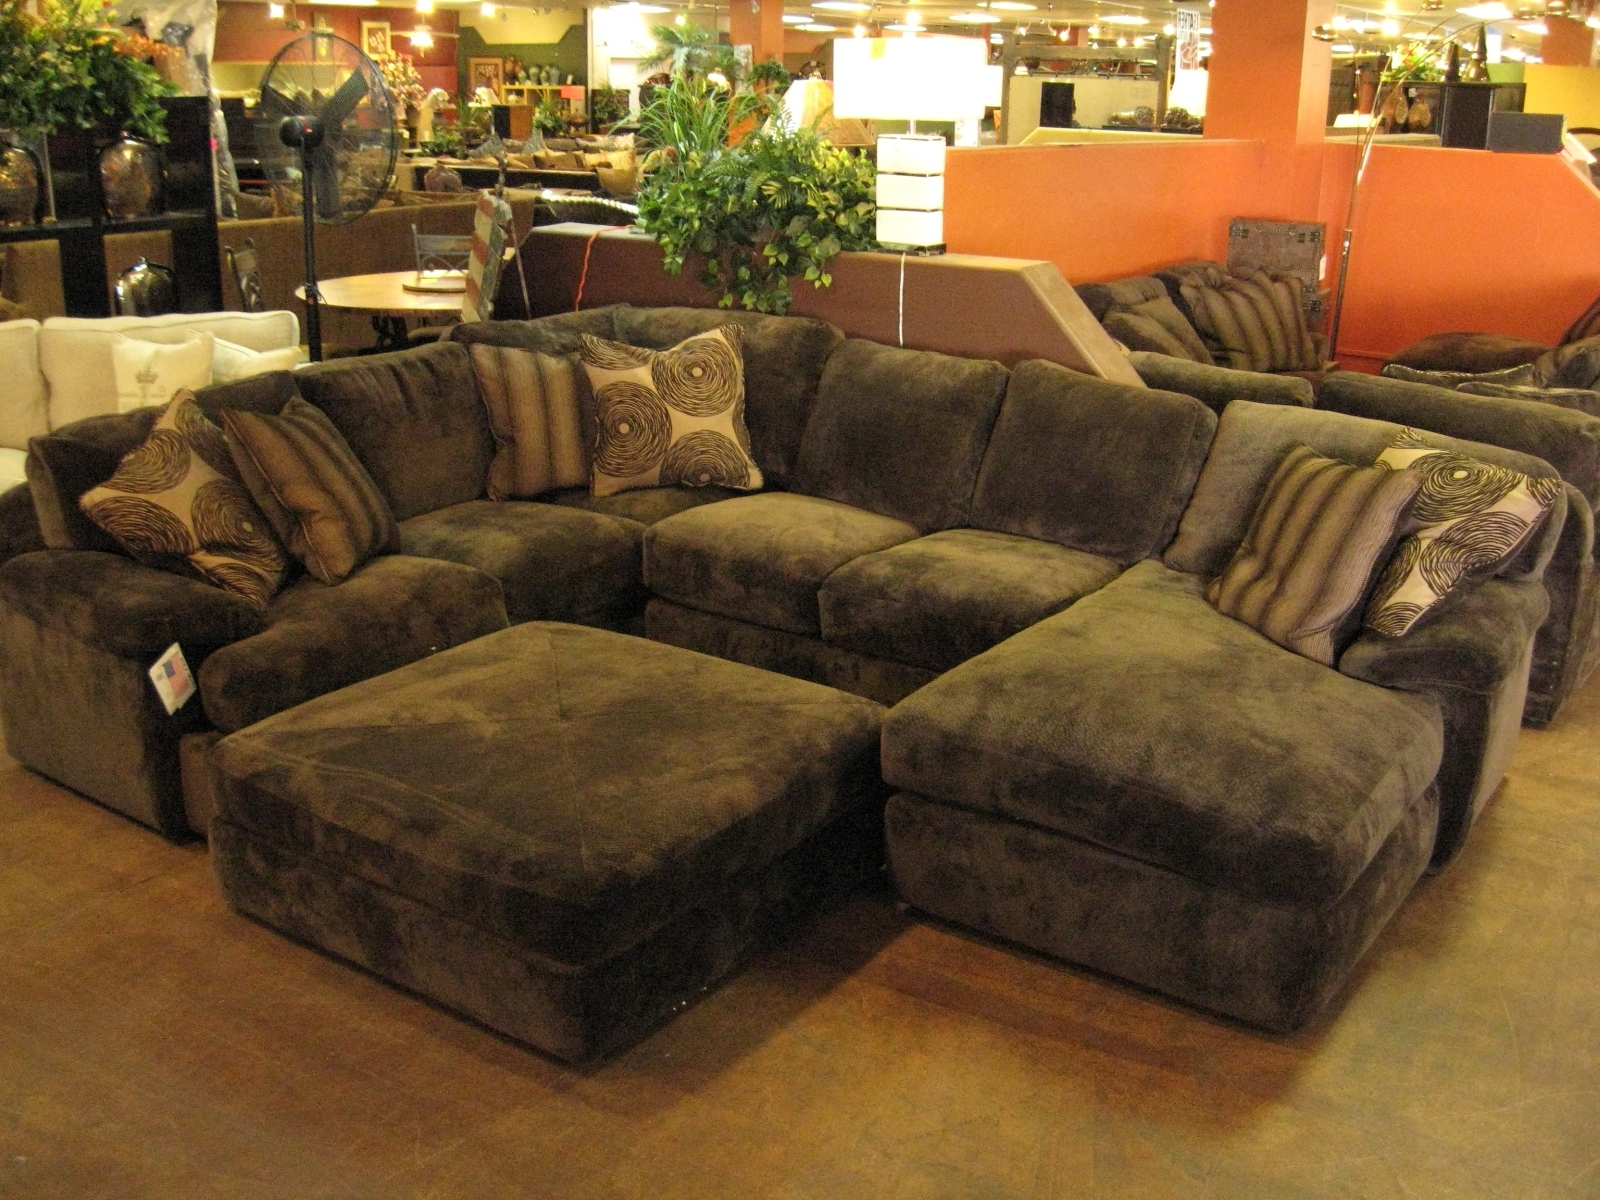 Trendy Extra Deep U Shaped Sofa With Chaise And Ottoman Of Gorgeous Extra Within Sofas With Chaise And Ottoman (View 4 of 20)